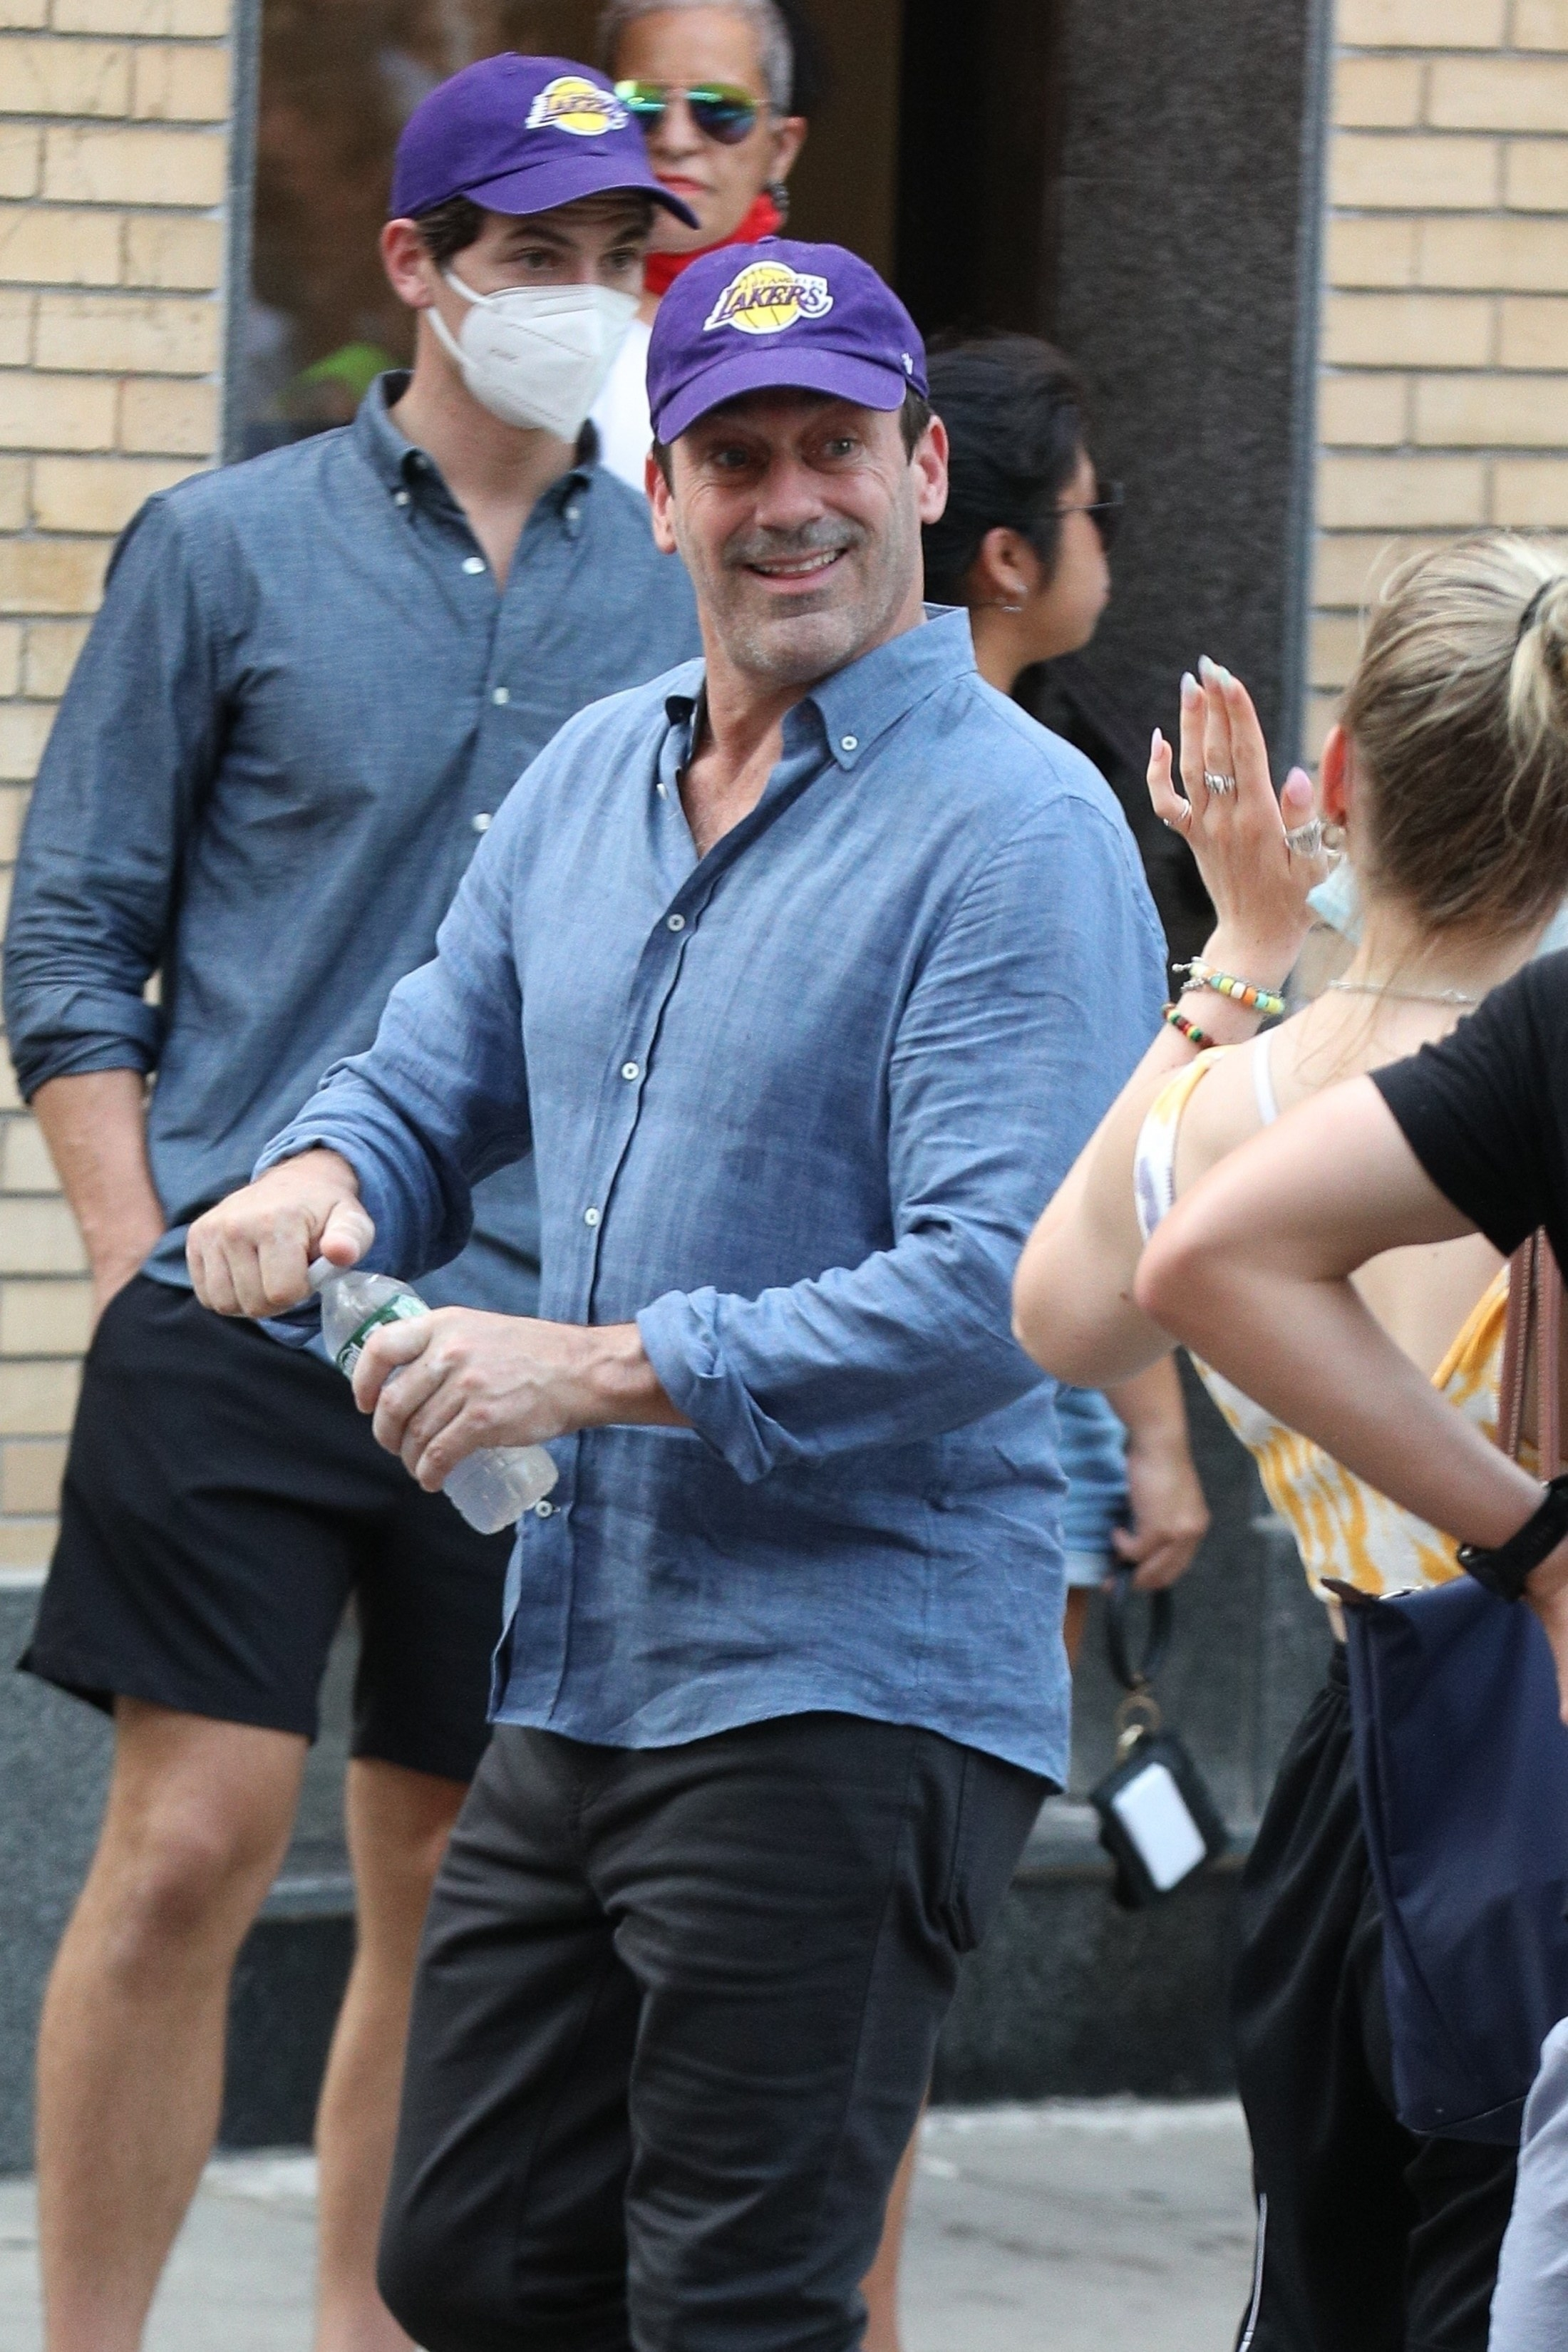 Jon Hamm and his stunt double wearing a lakers hat while filming